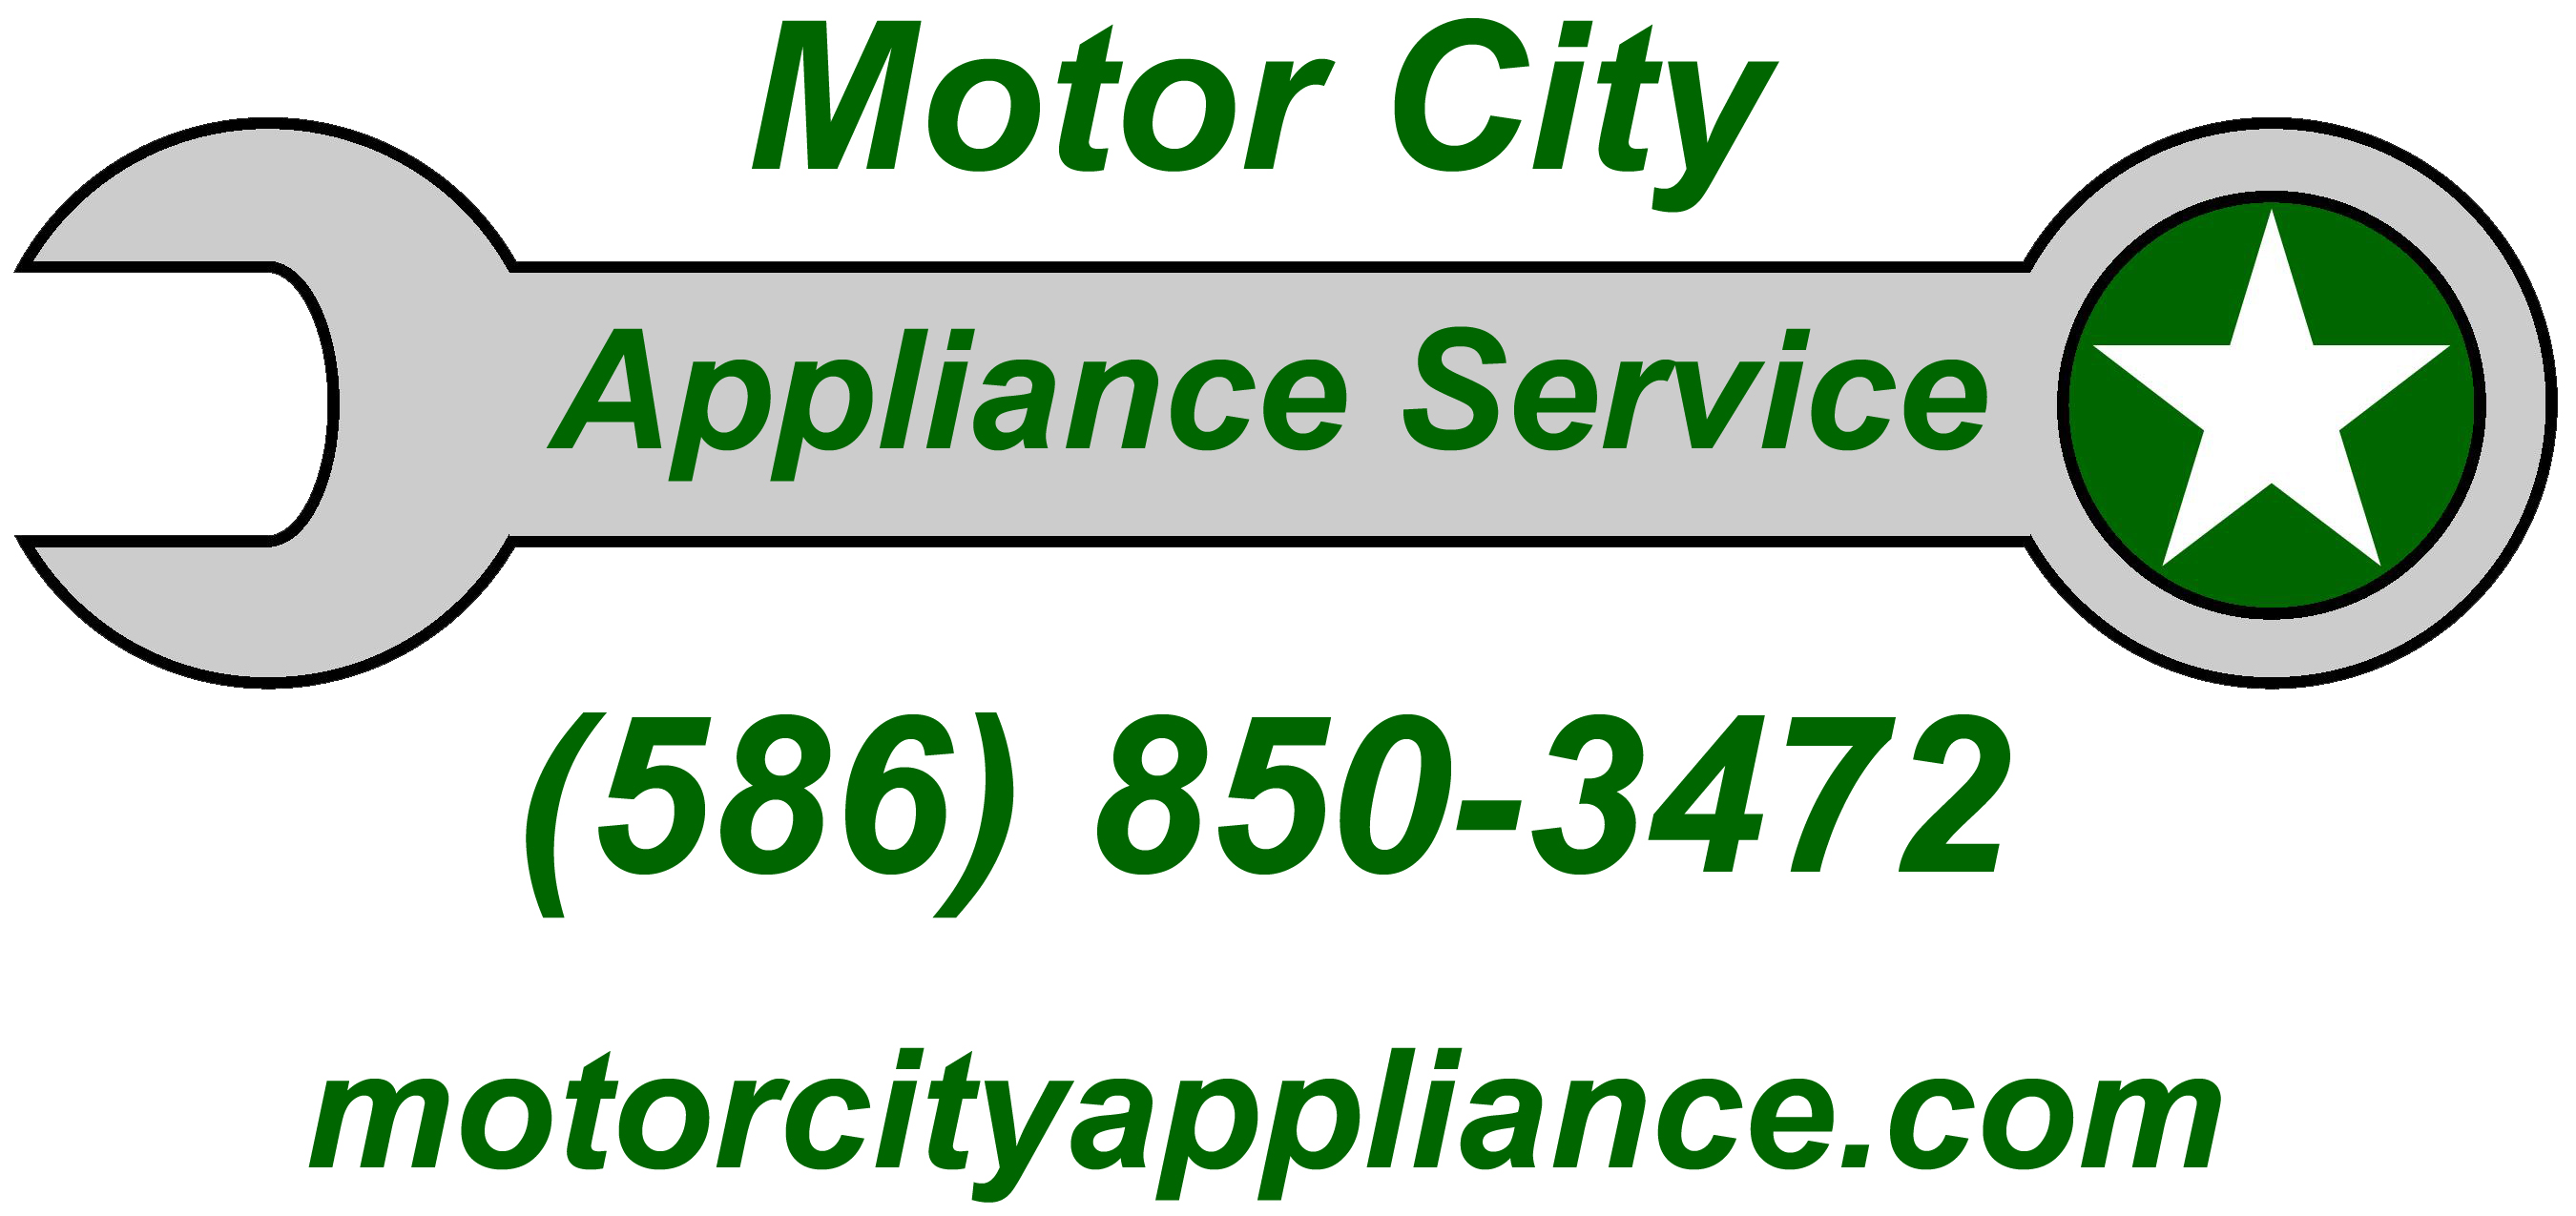 Motor City Appliance Service